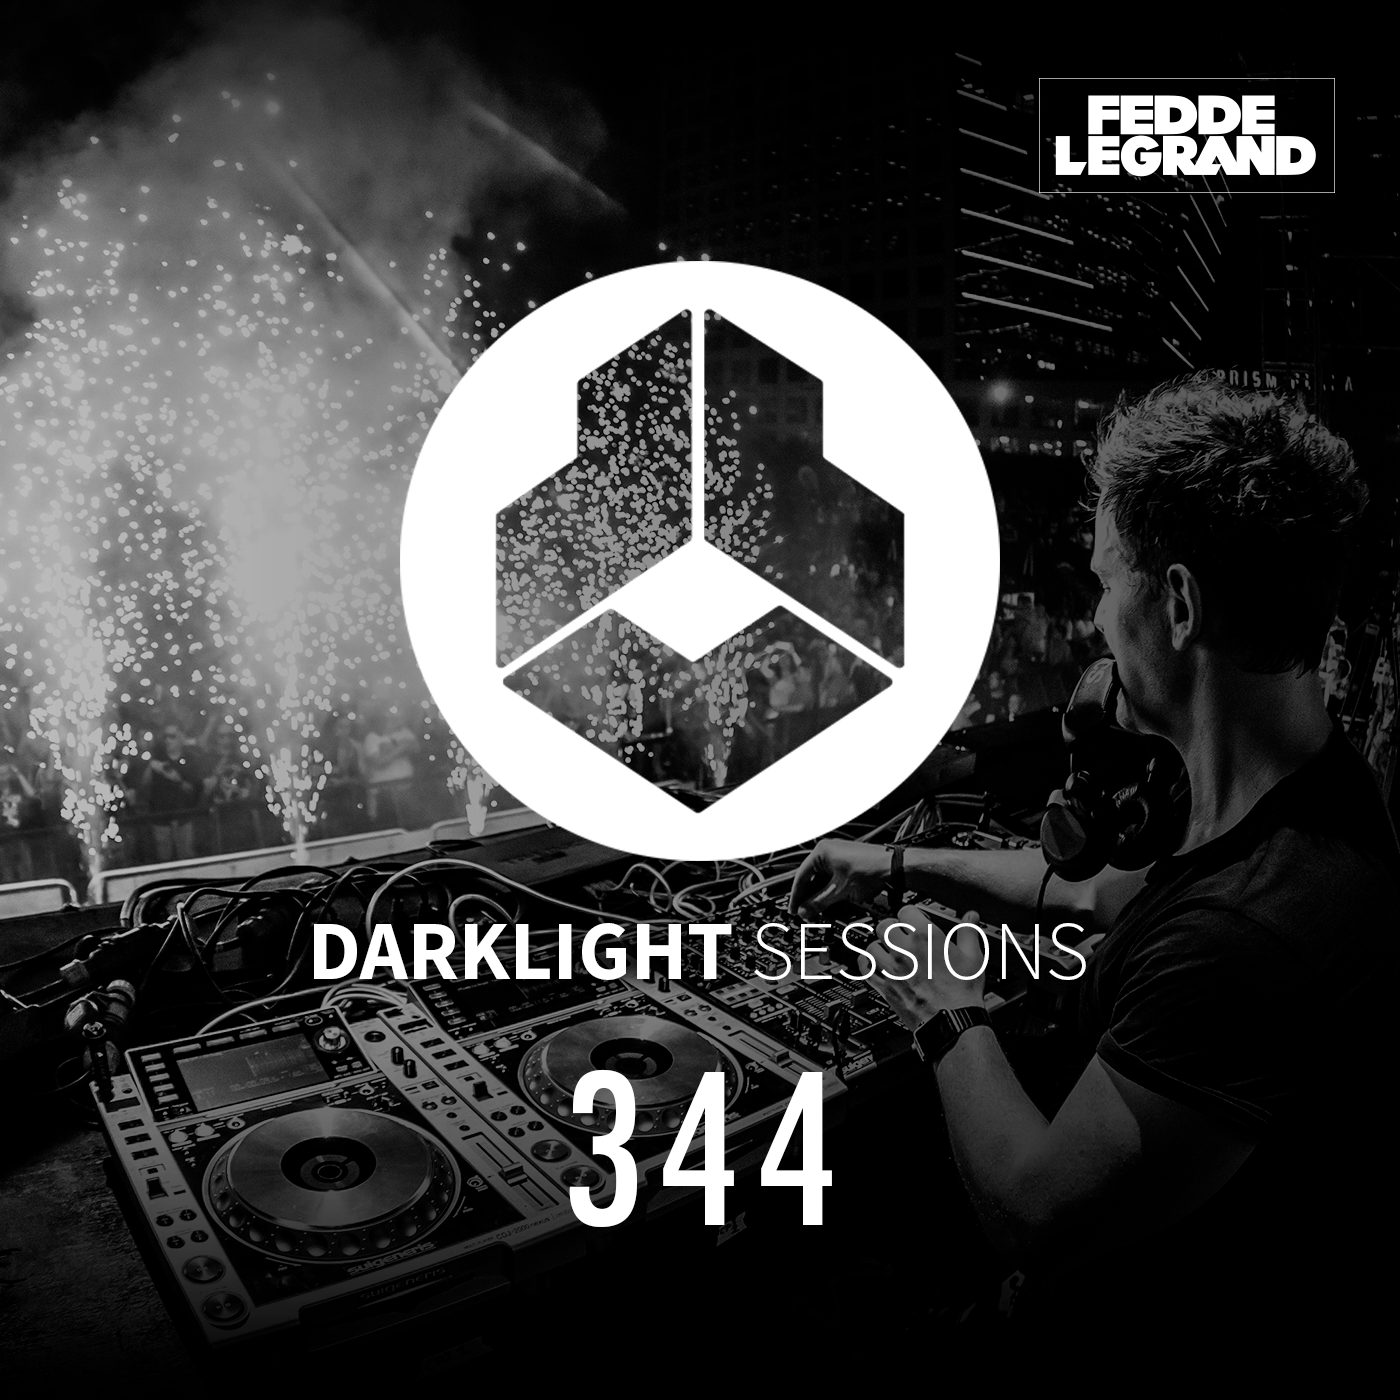 Darklight Sessions 344